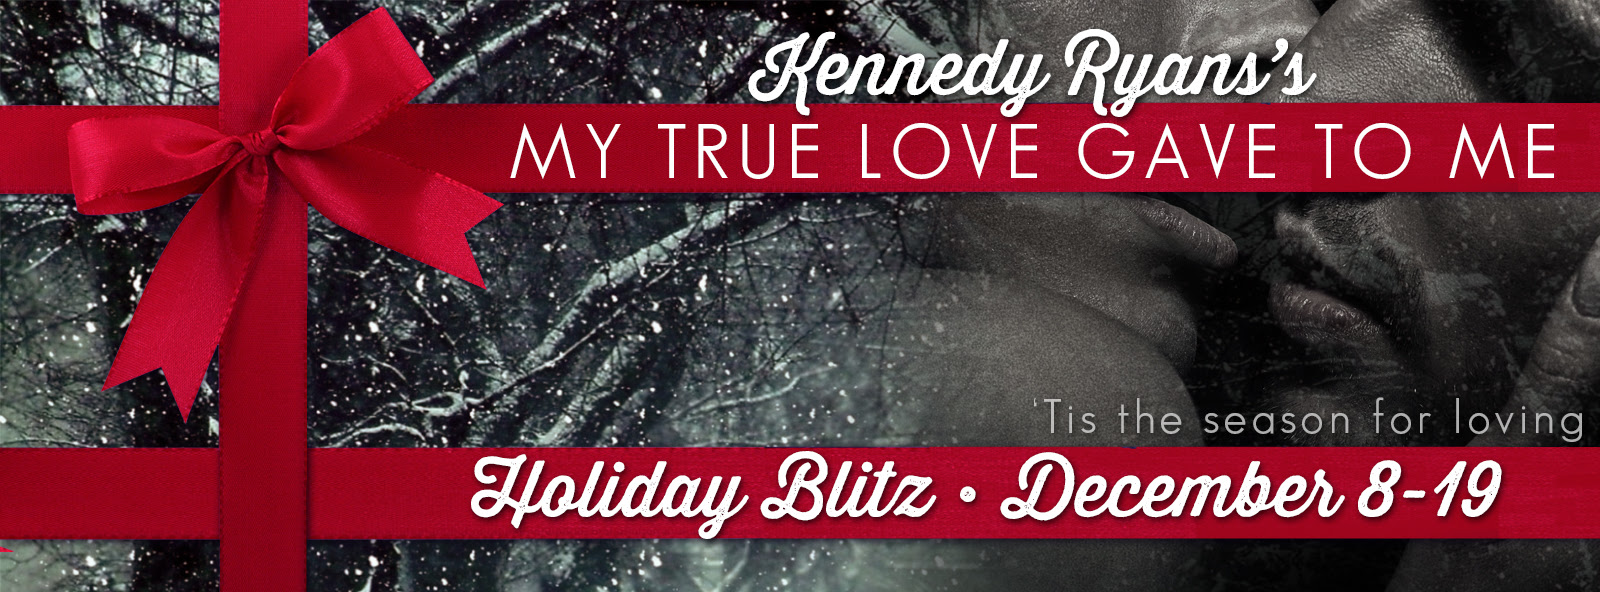 my true love gave to me banner